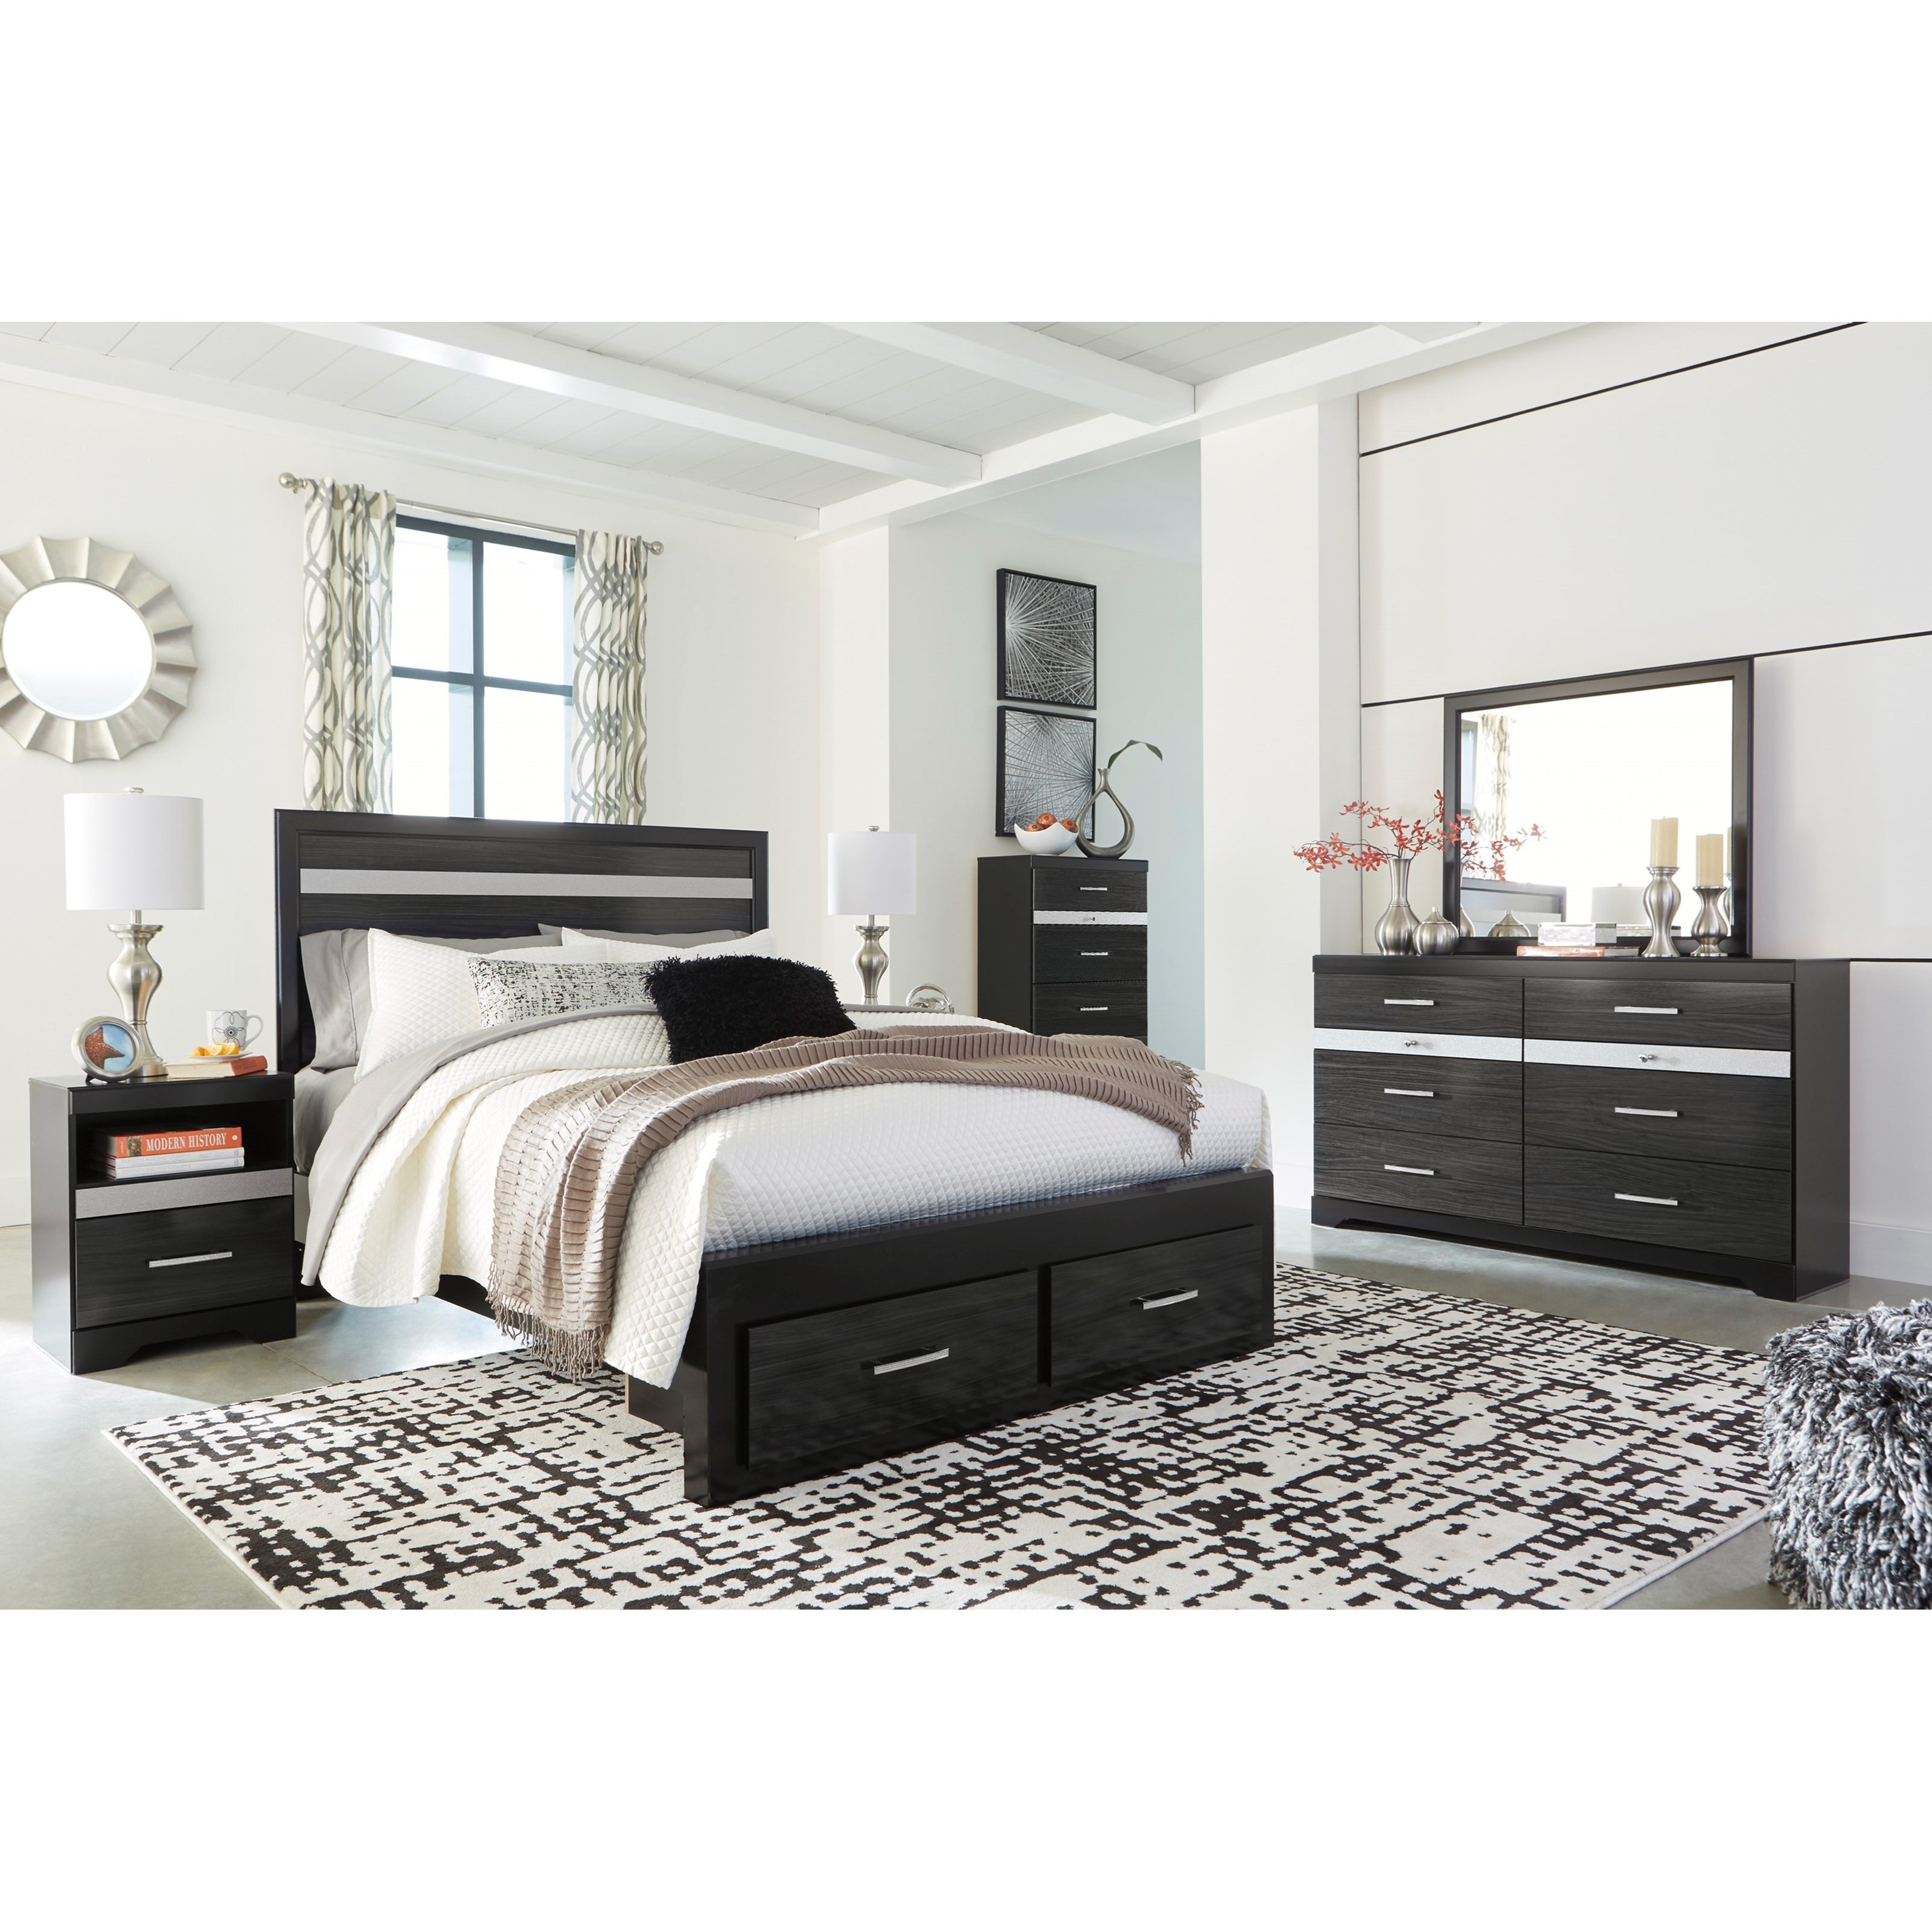 Signature Design By Ashley Starberry Queen Bedroom Group